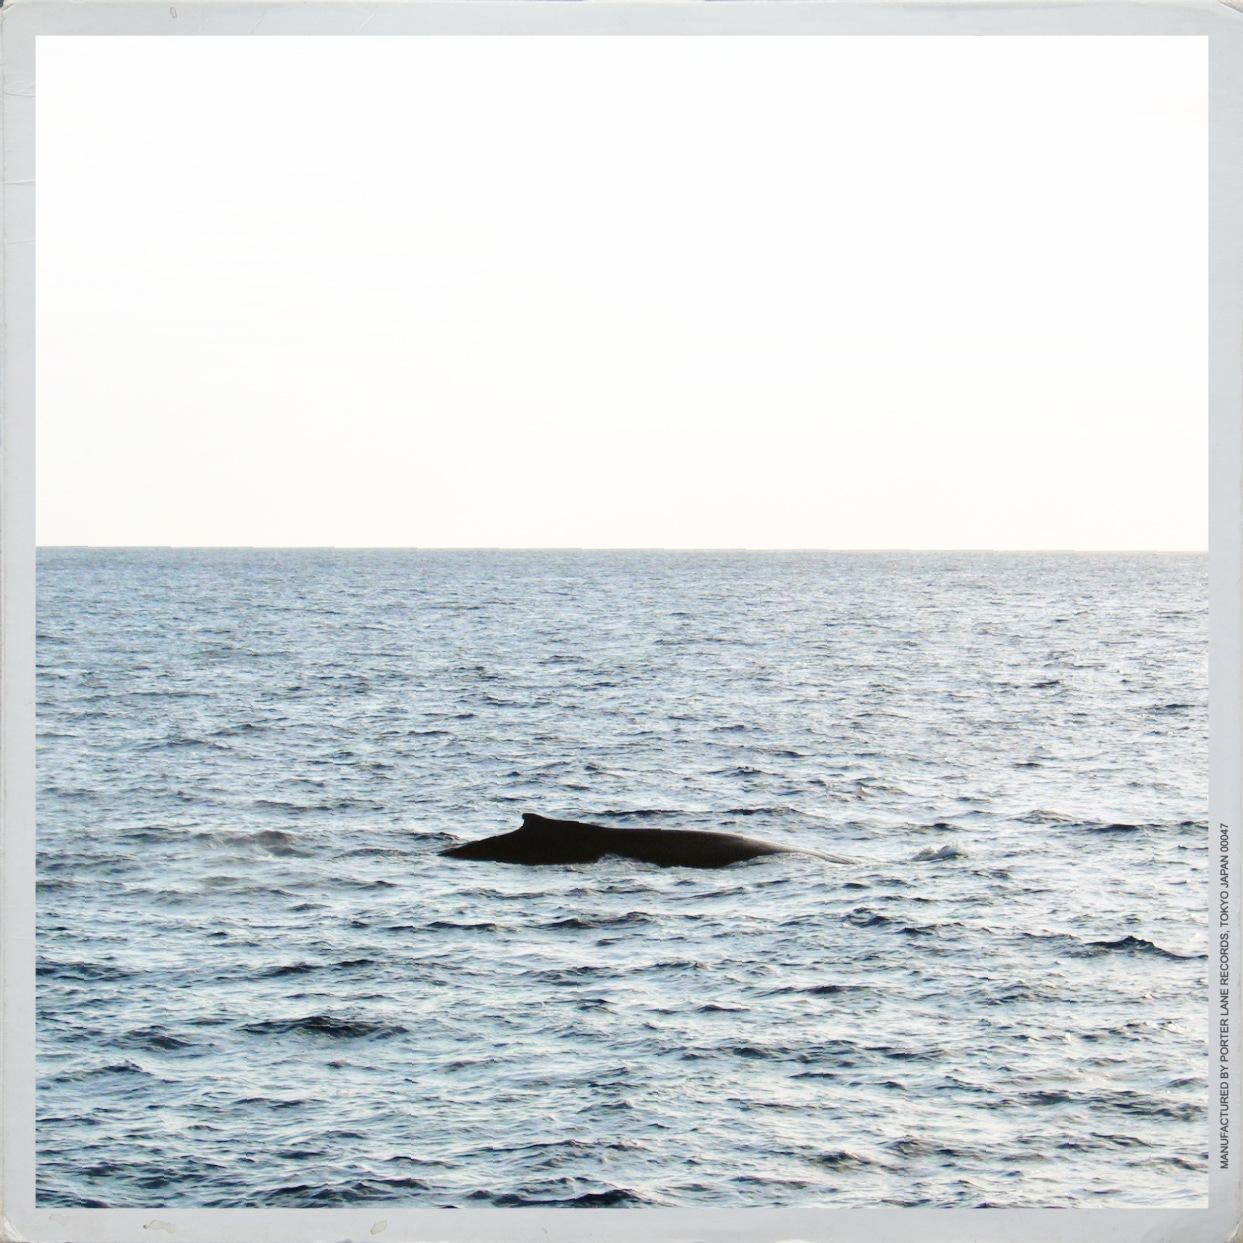 Whale in Maalaea